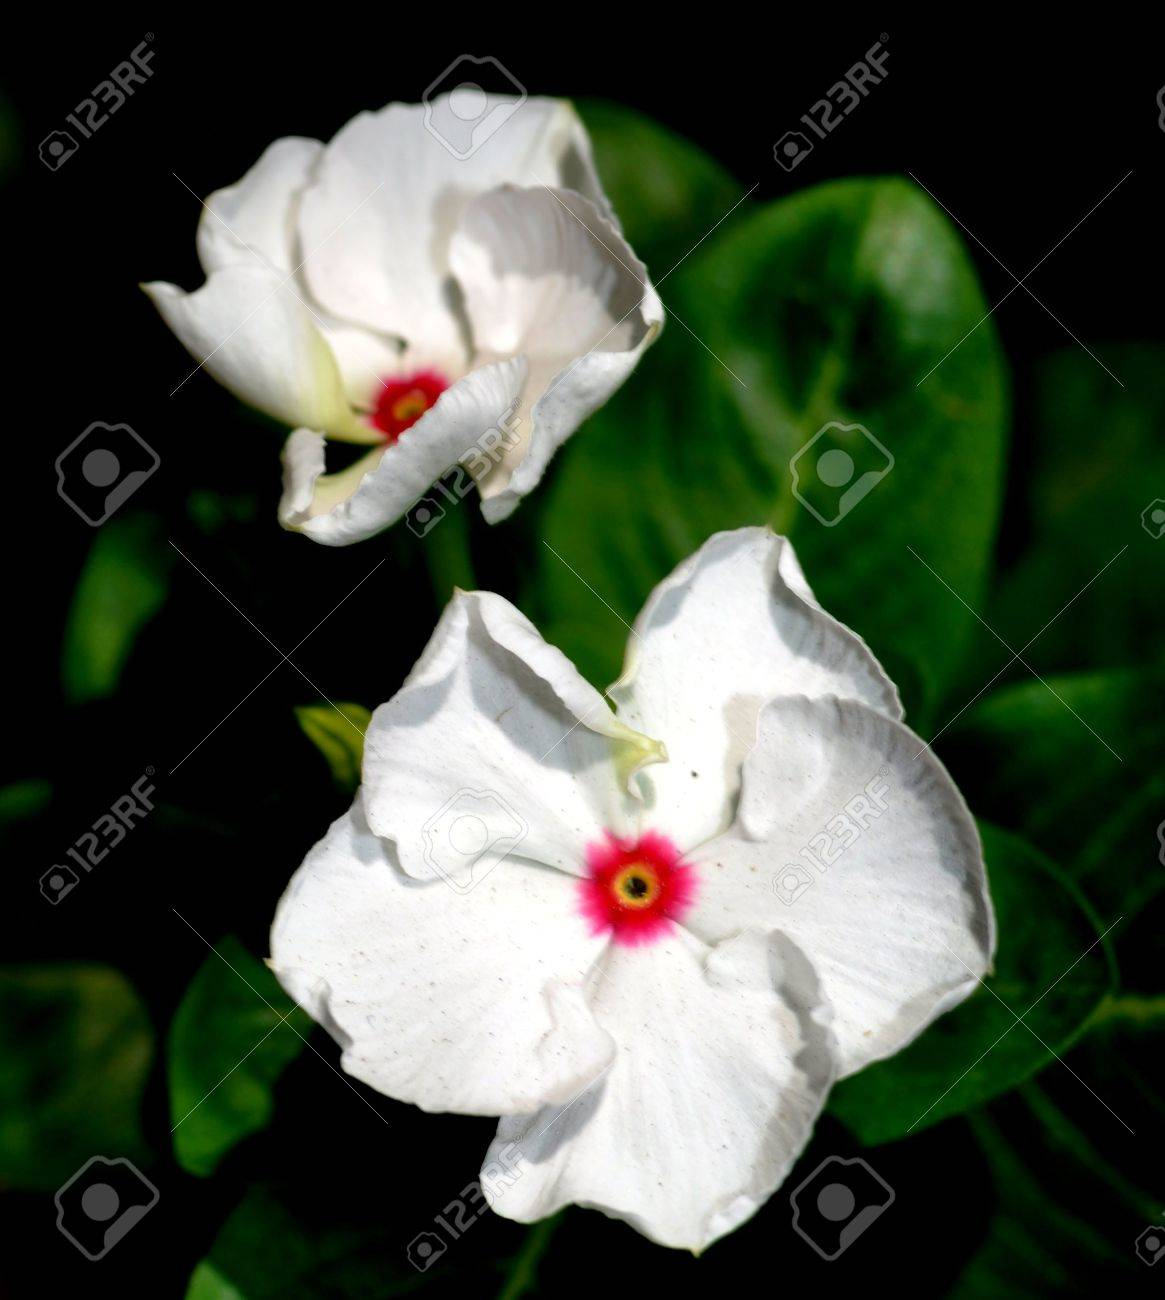 Tow White Flower With Red And Yellow Center Color Stock Photo